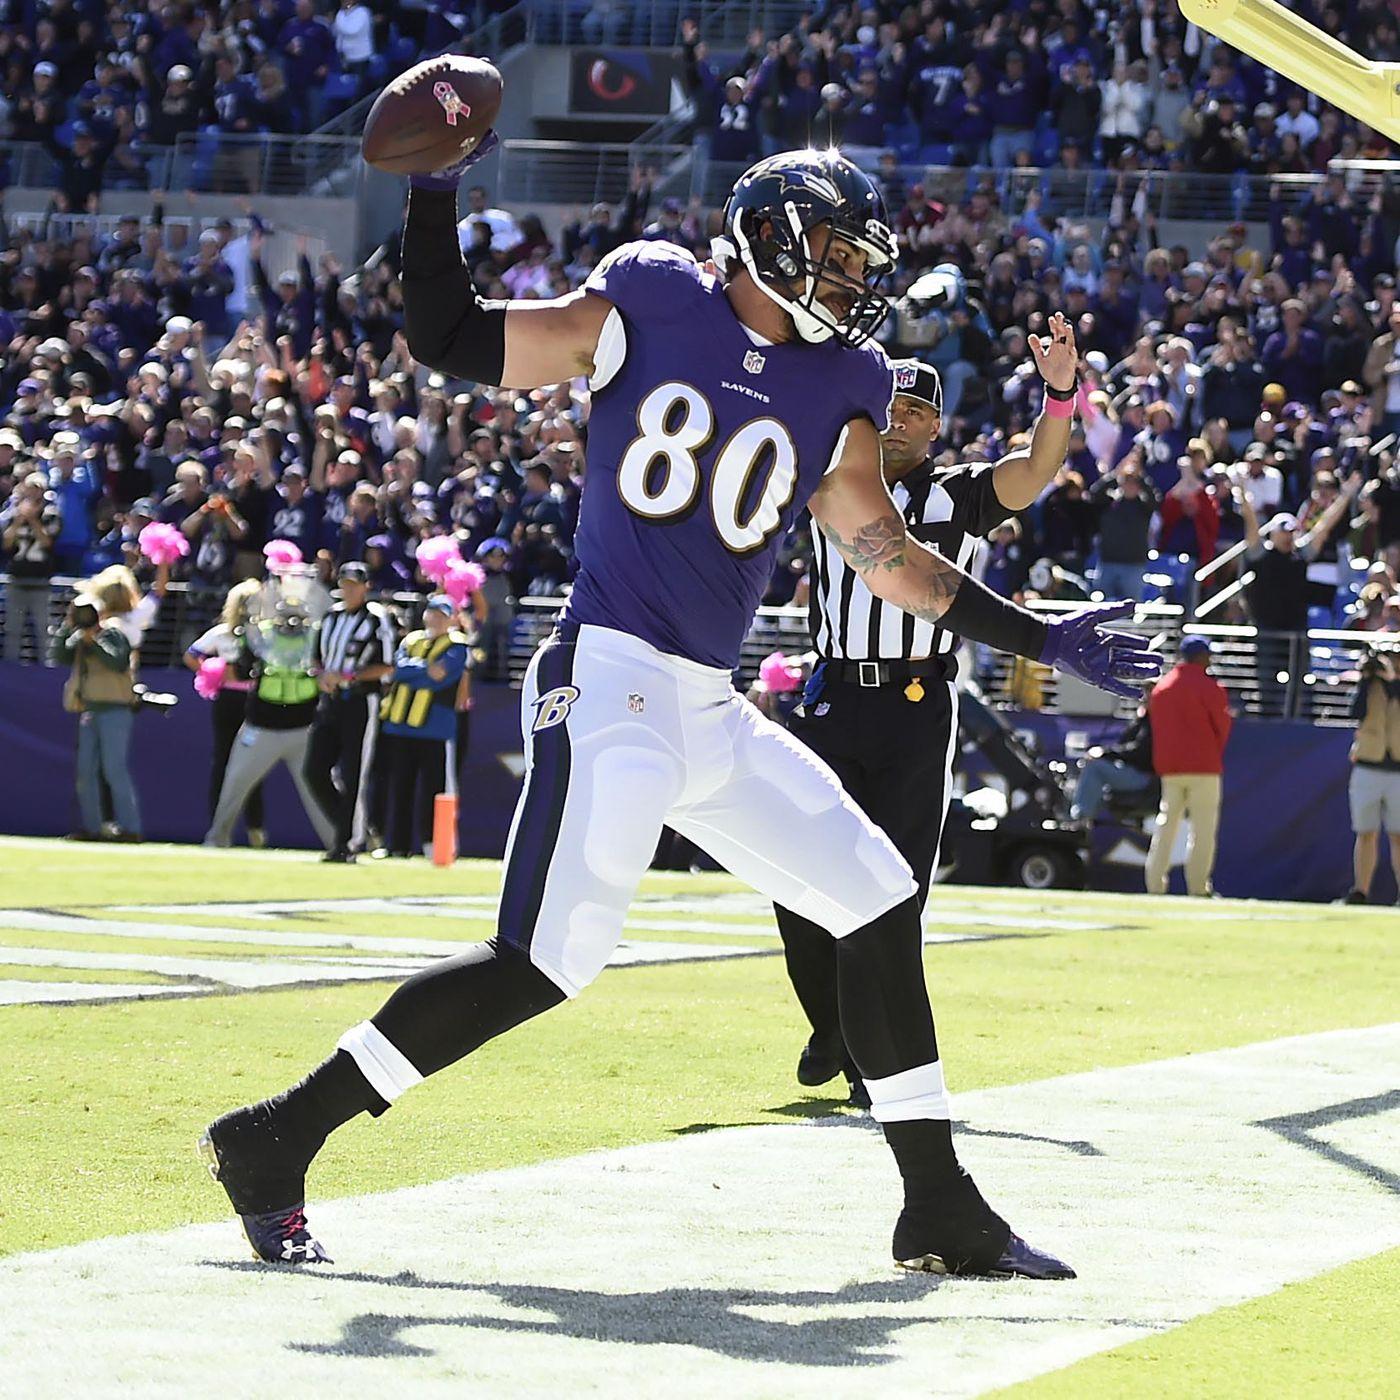 Ravens TE Crockett Gillmore switching to offensive line ...